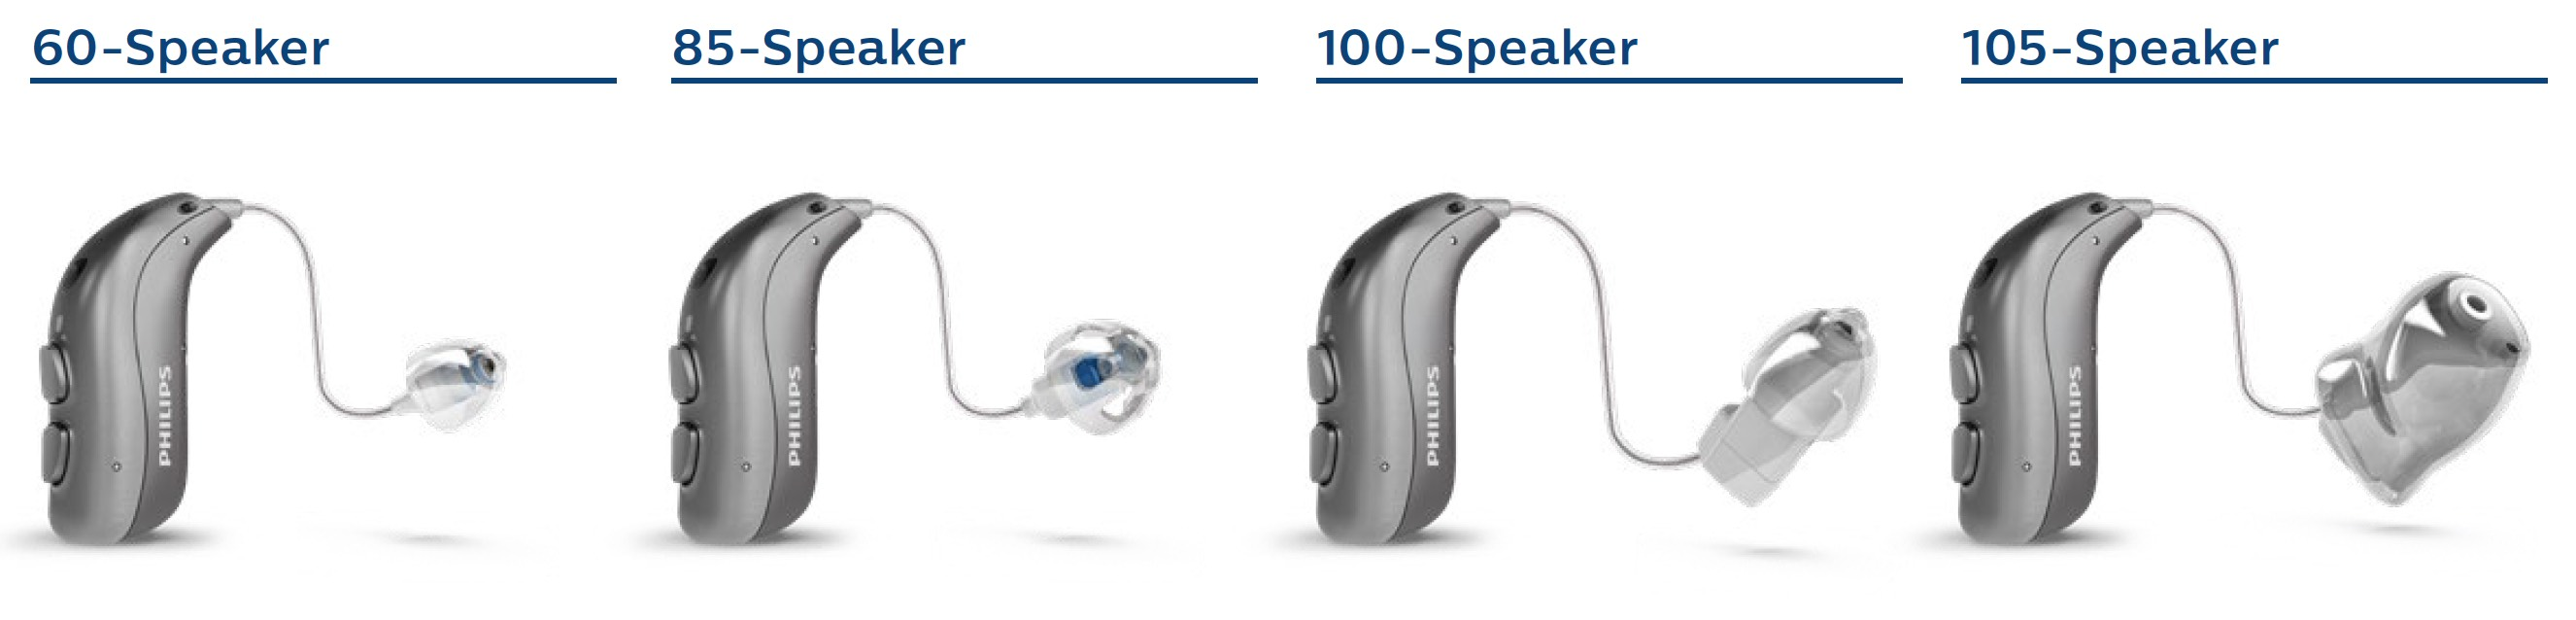 Costco to Sell Philips Hearing Aids - From $1,249 99